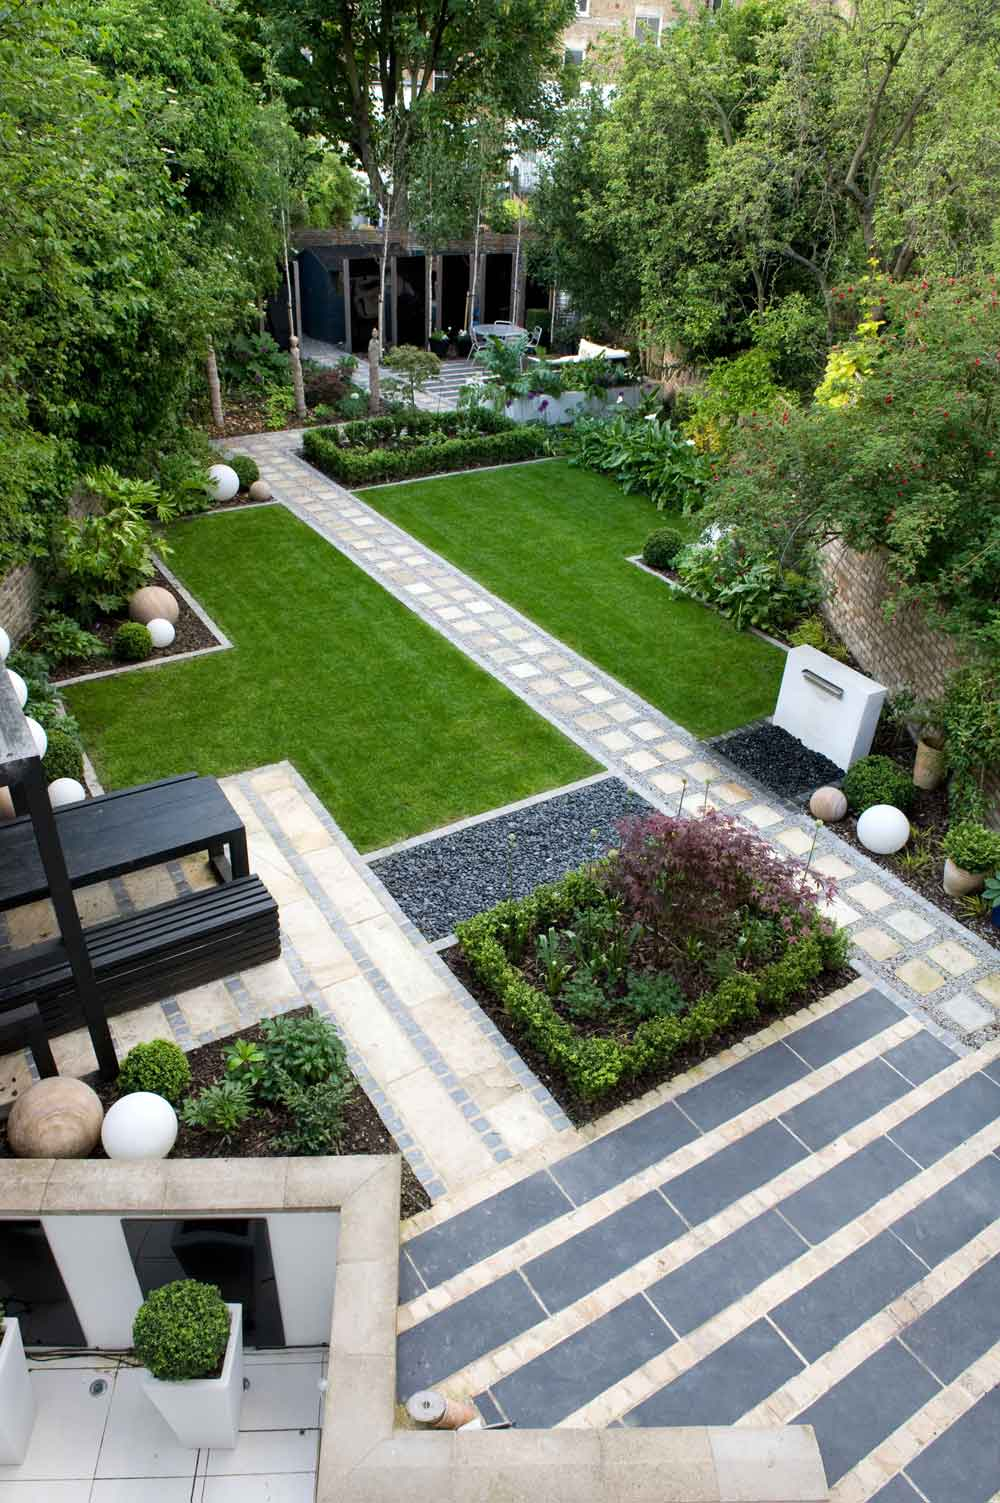 Before & After: A Modern Japanese Garden in North London – Design